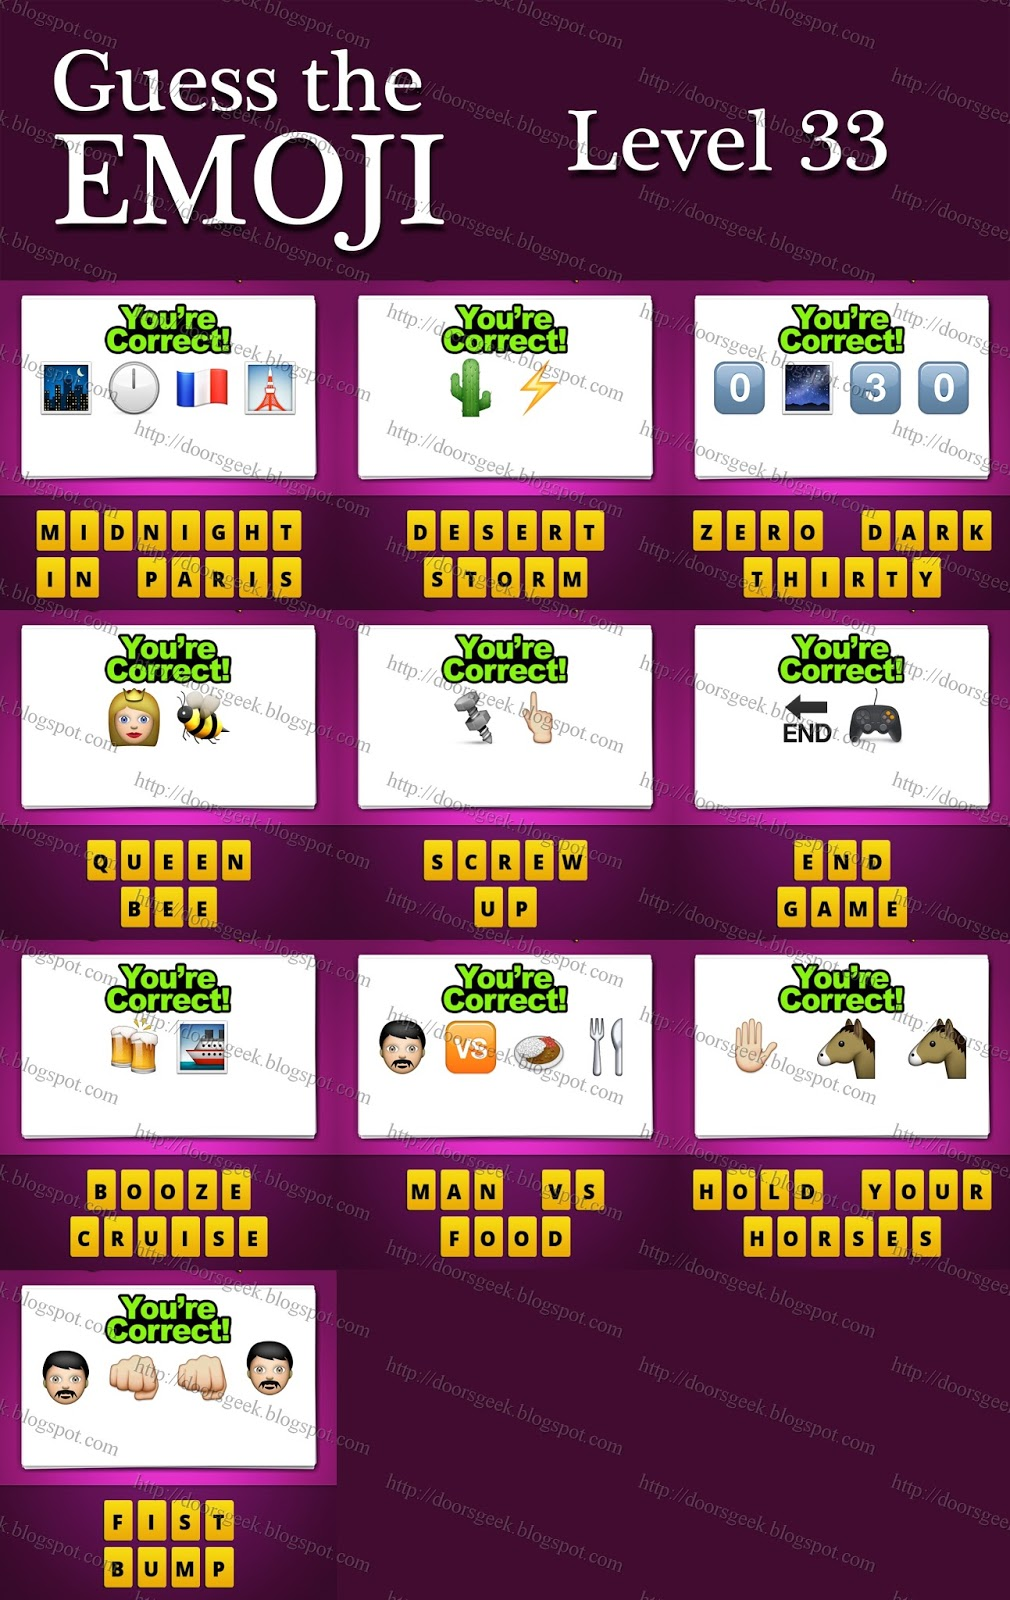 Guess What I Know: Guess The Emoji [Level 33] Answers And Cheats